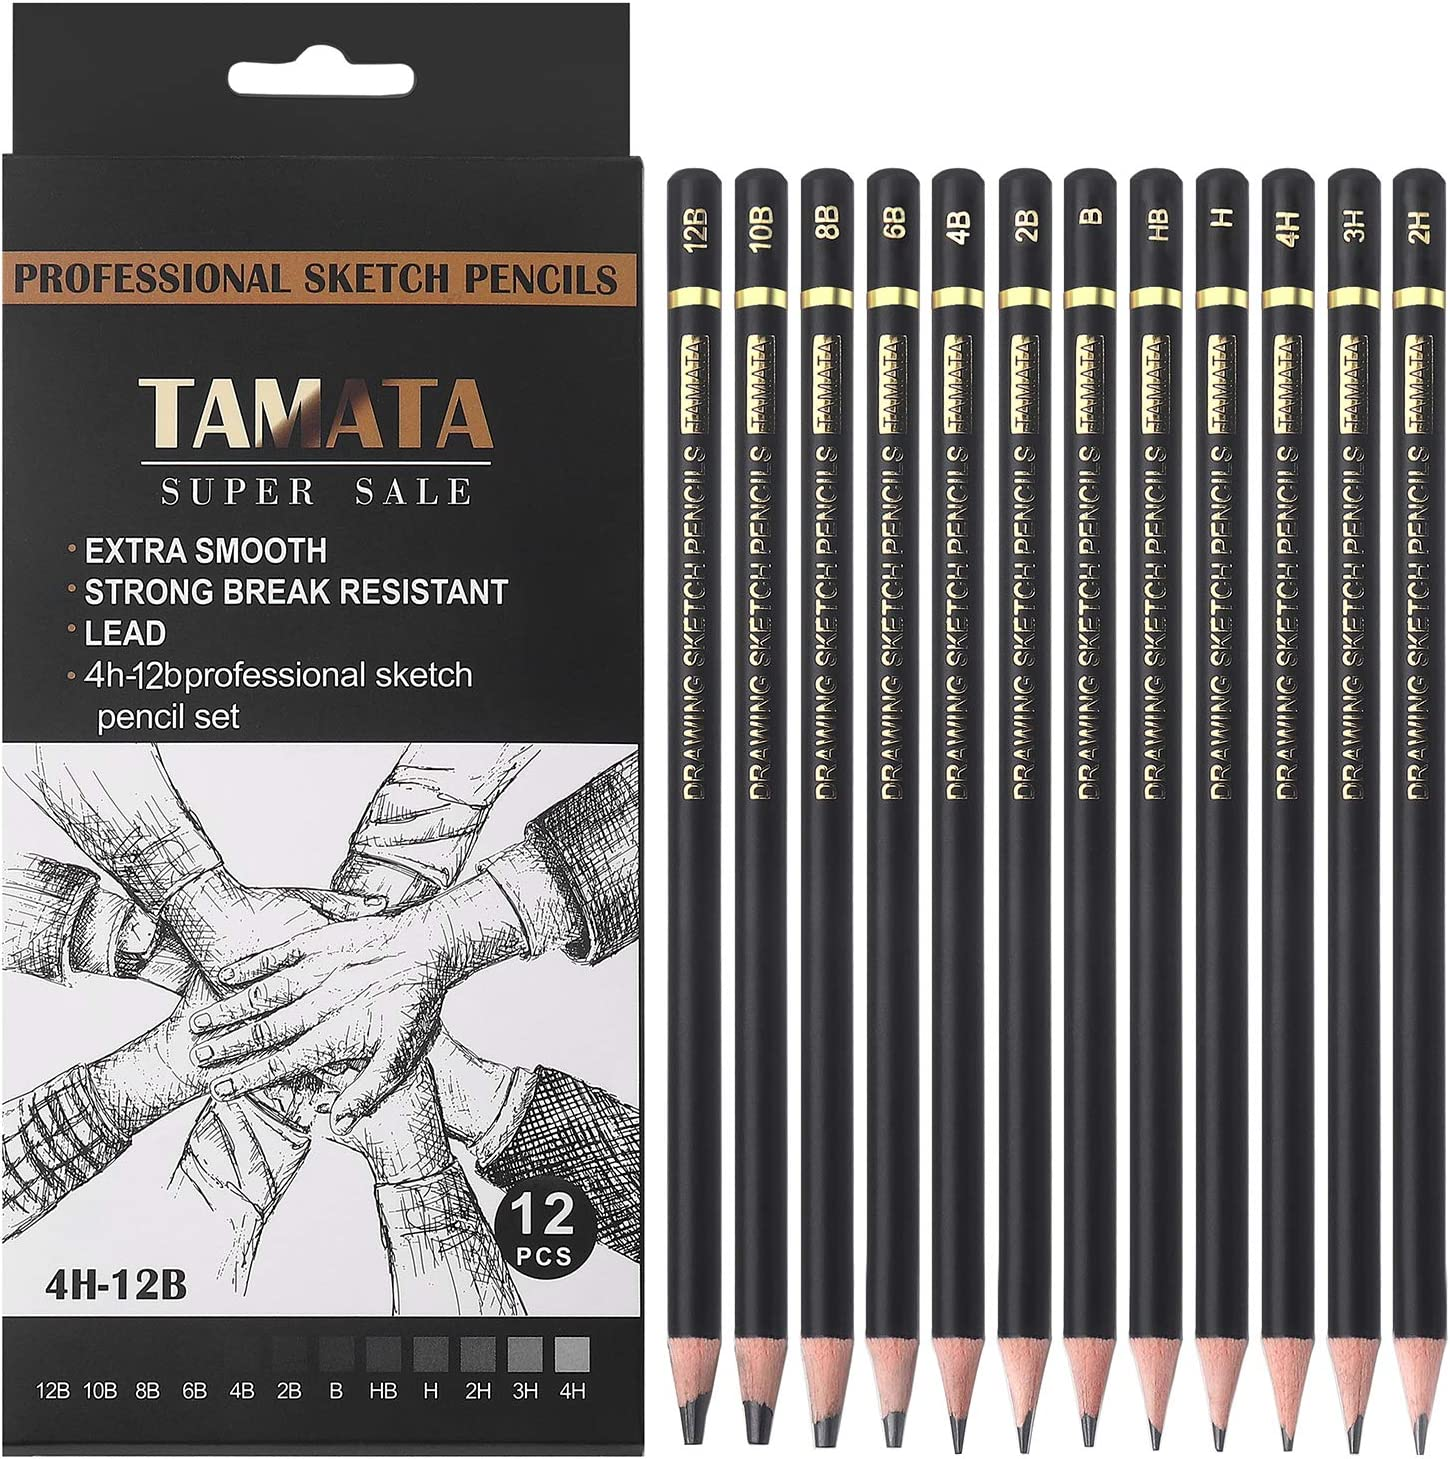 TAMATA Professional Drawing Sketching Pencil - Ranking TOP5 Set Pieces 12 Discount is also underway Art